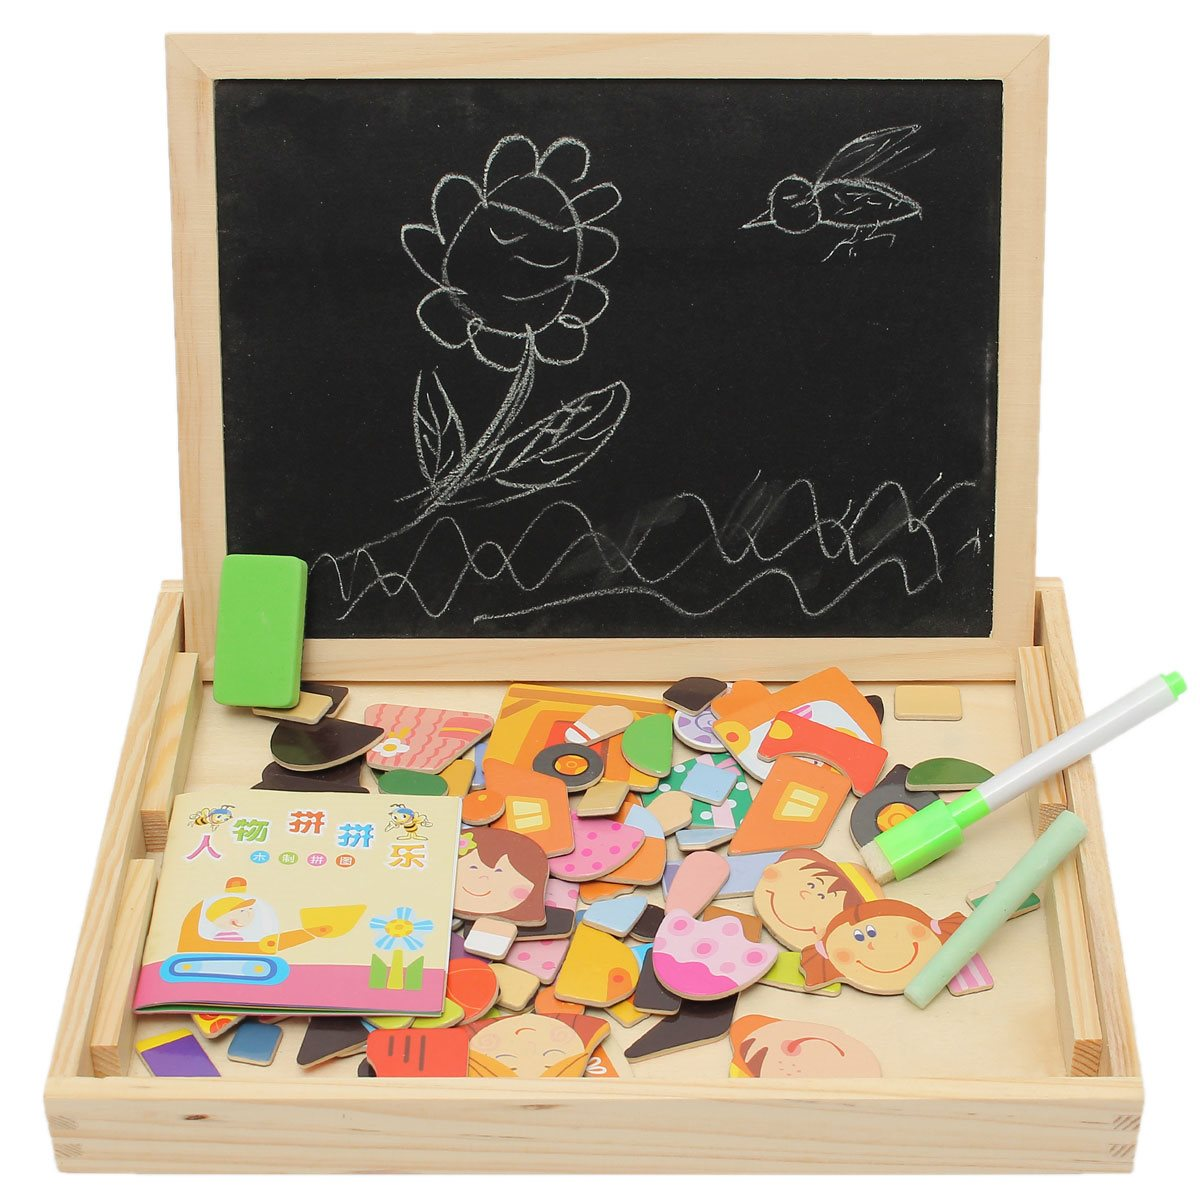 New-Arrival-Drawing-Writing-Board-Magnetic-Board-Puzzle-Double-Easel-Kid-Wooden-Toy-Gift-Children-Intelligence-Development-Toy-3